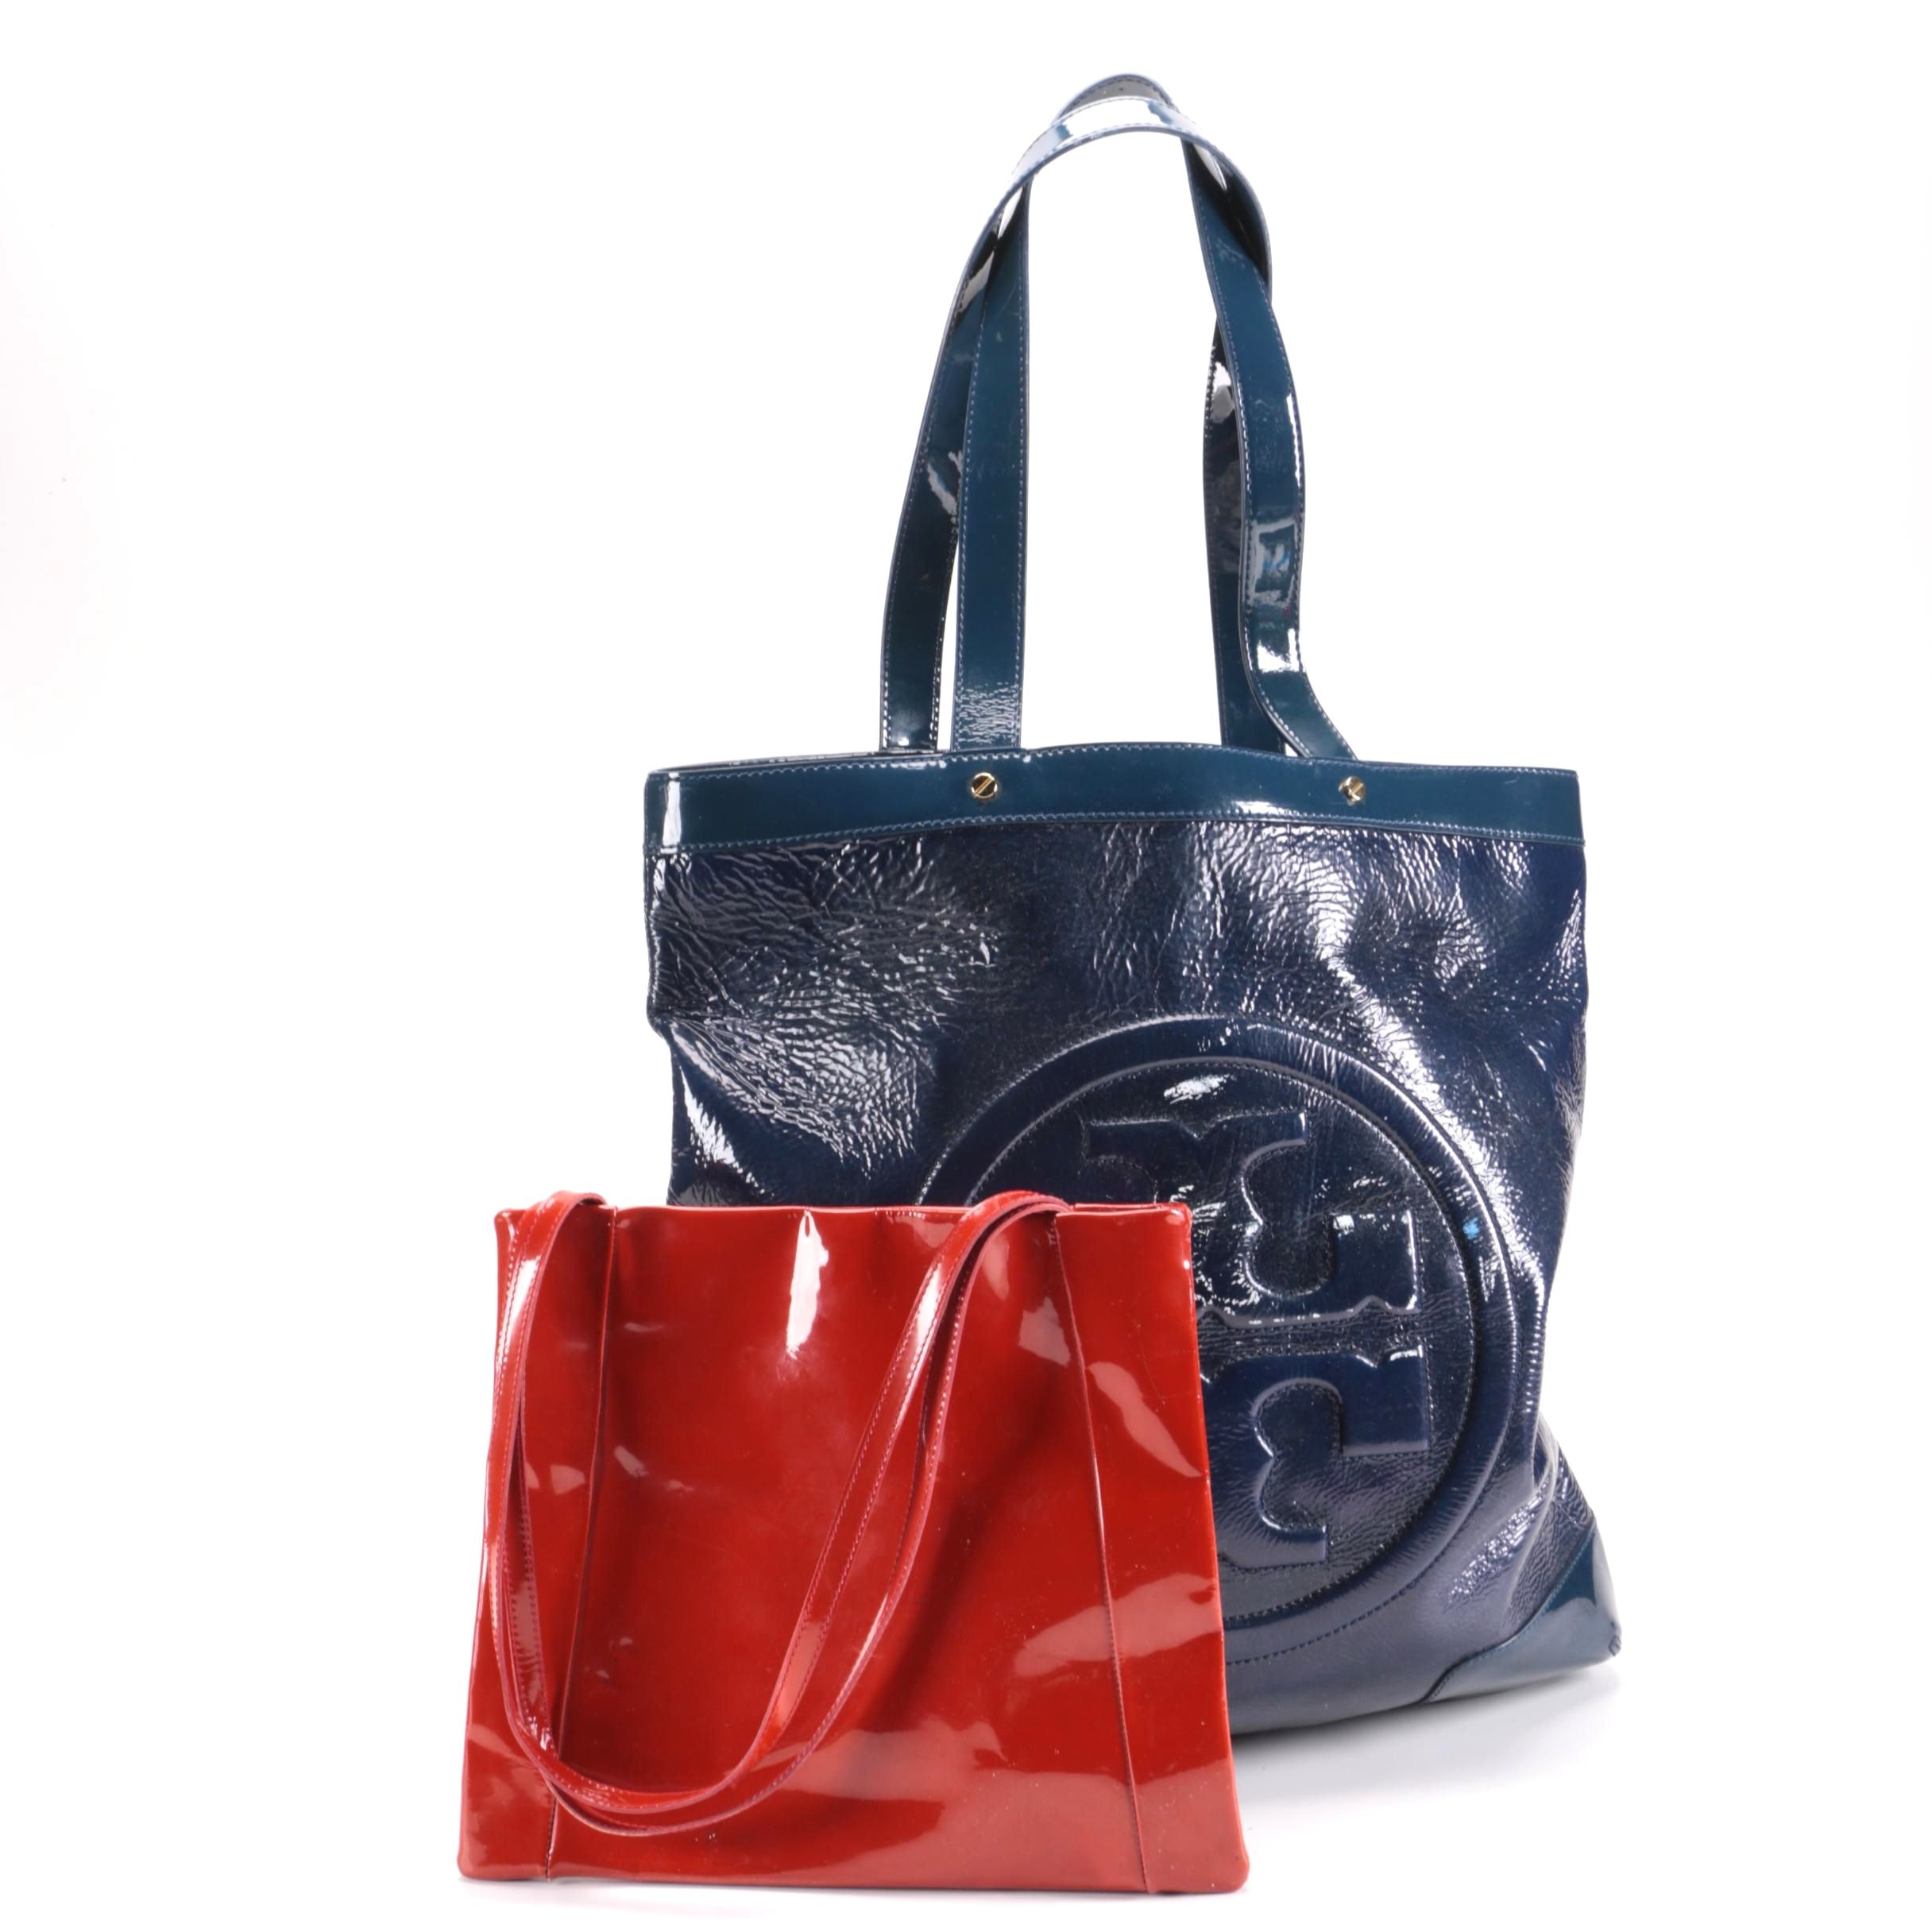 Tote Bags Including Tory Burch